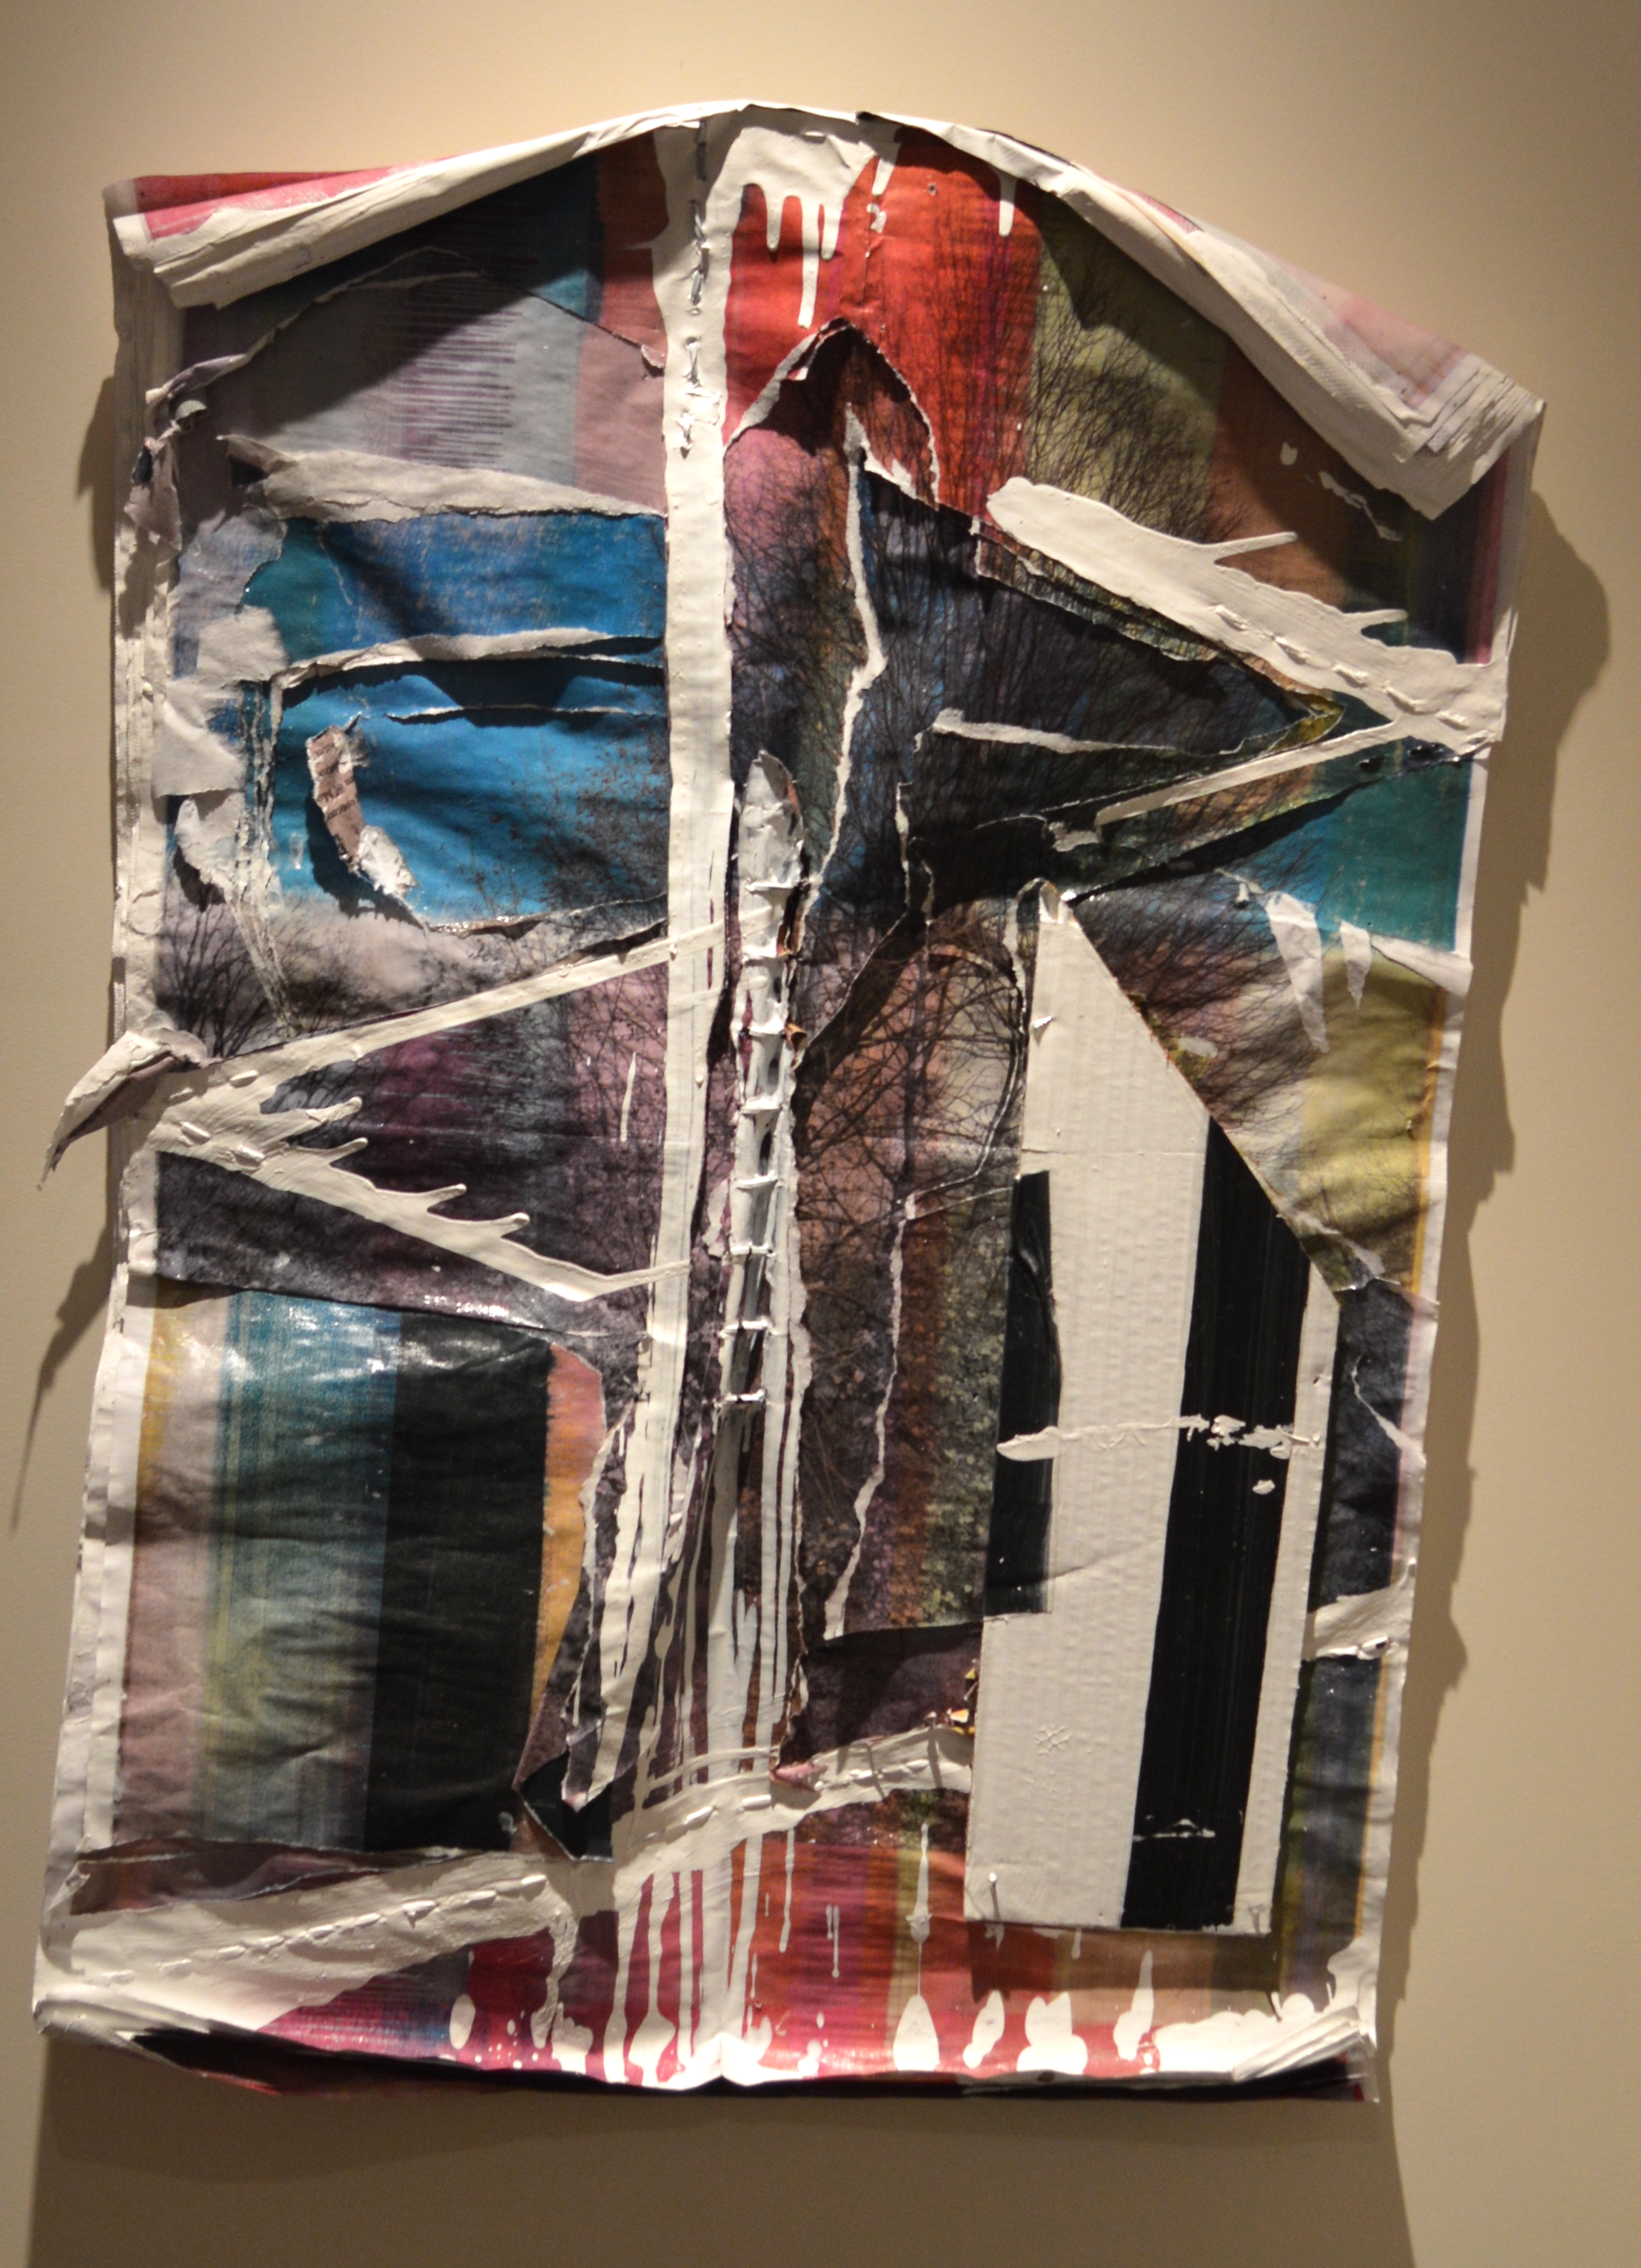 Artwork by David Goodman, inspired by the thick piles of newspapers mounted all over Berlin, Germany